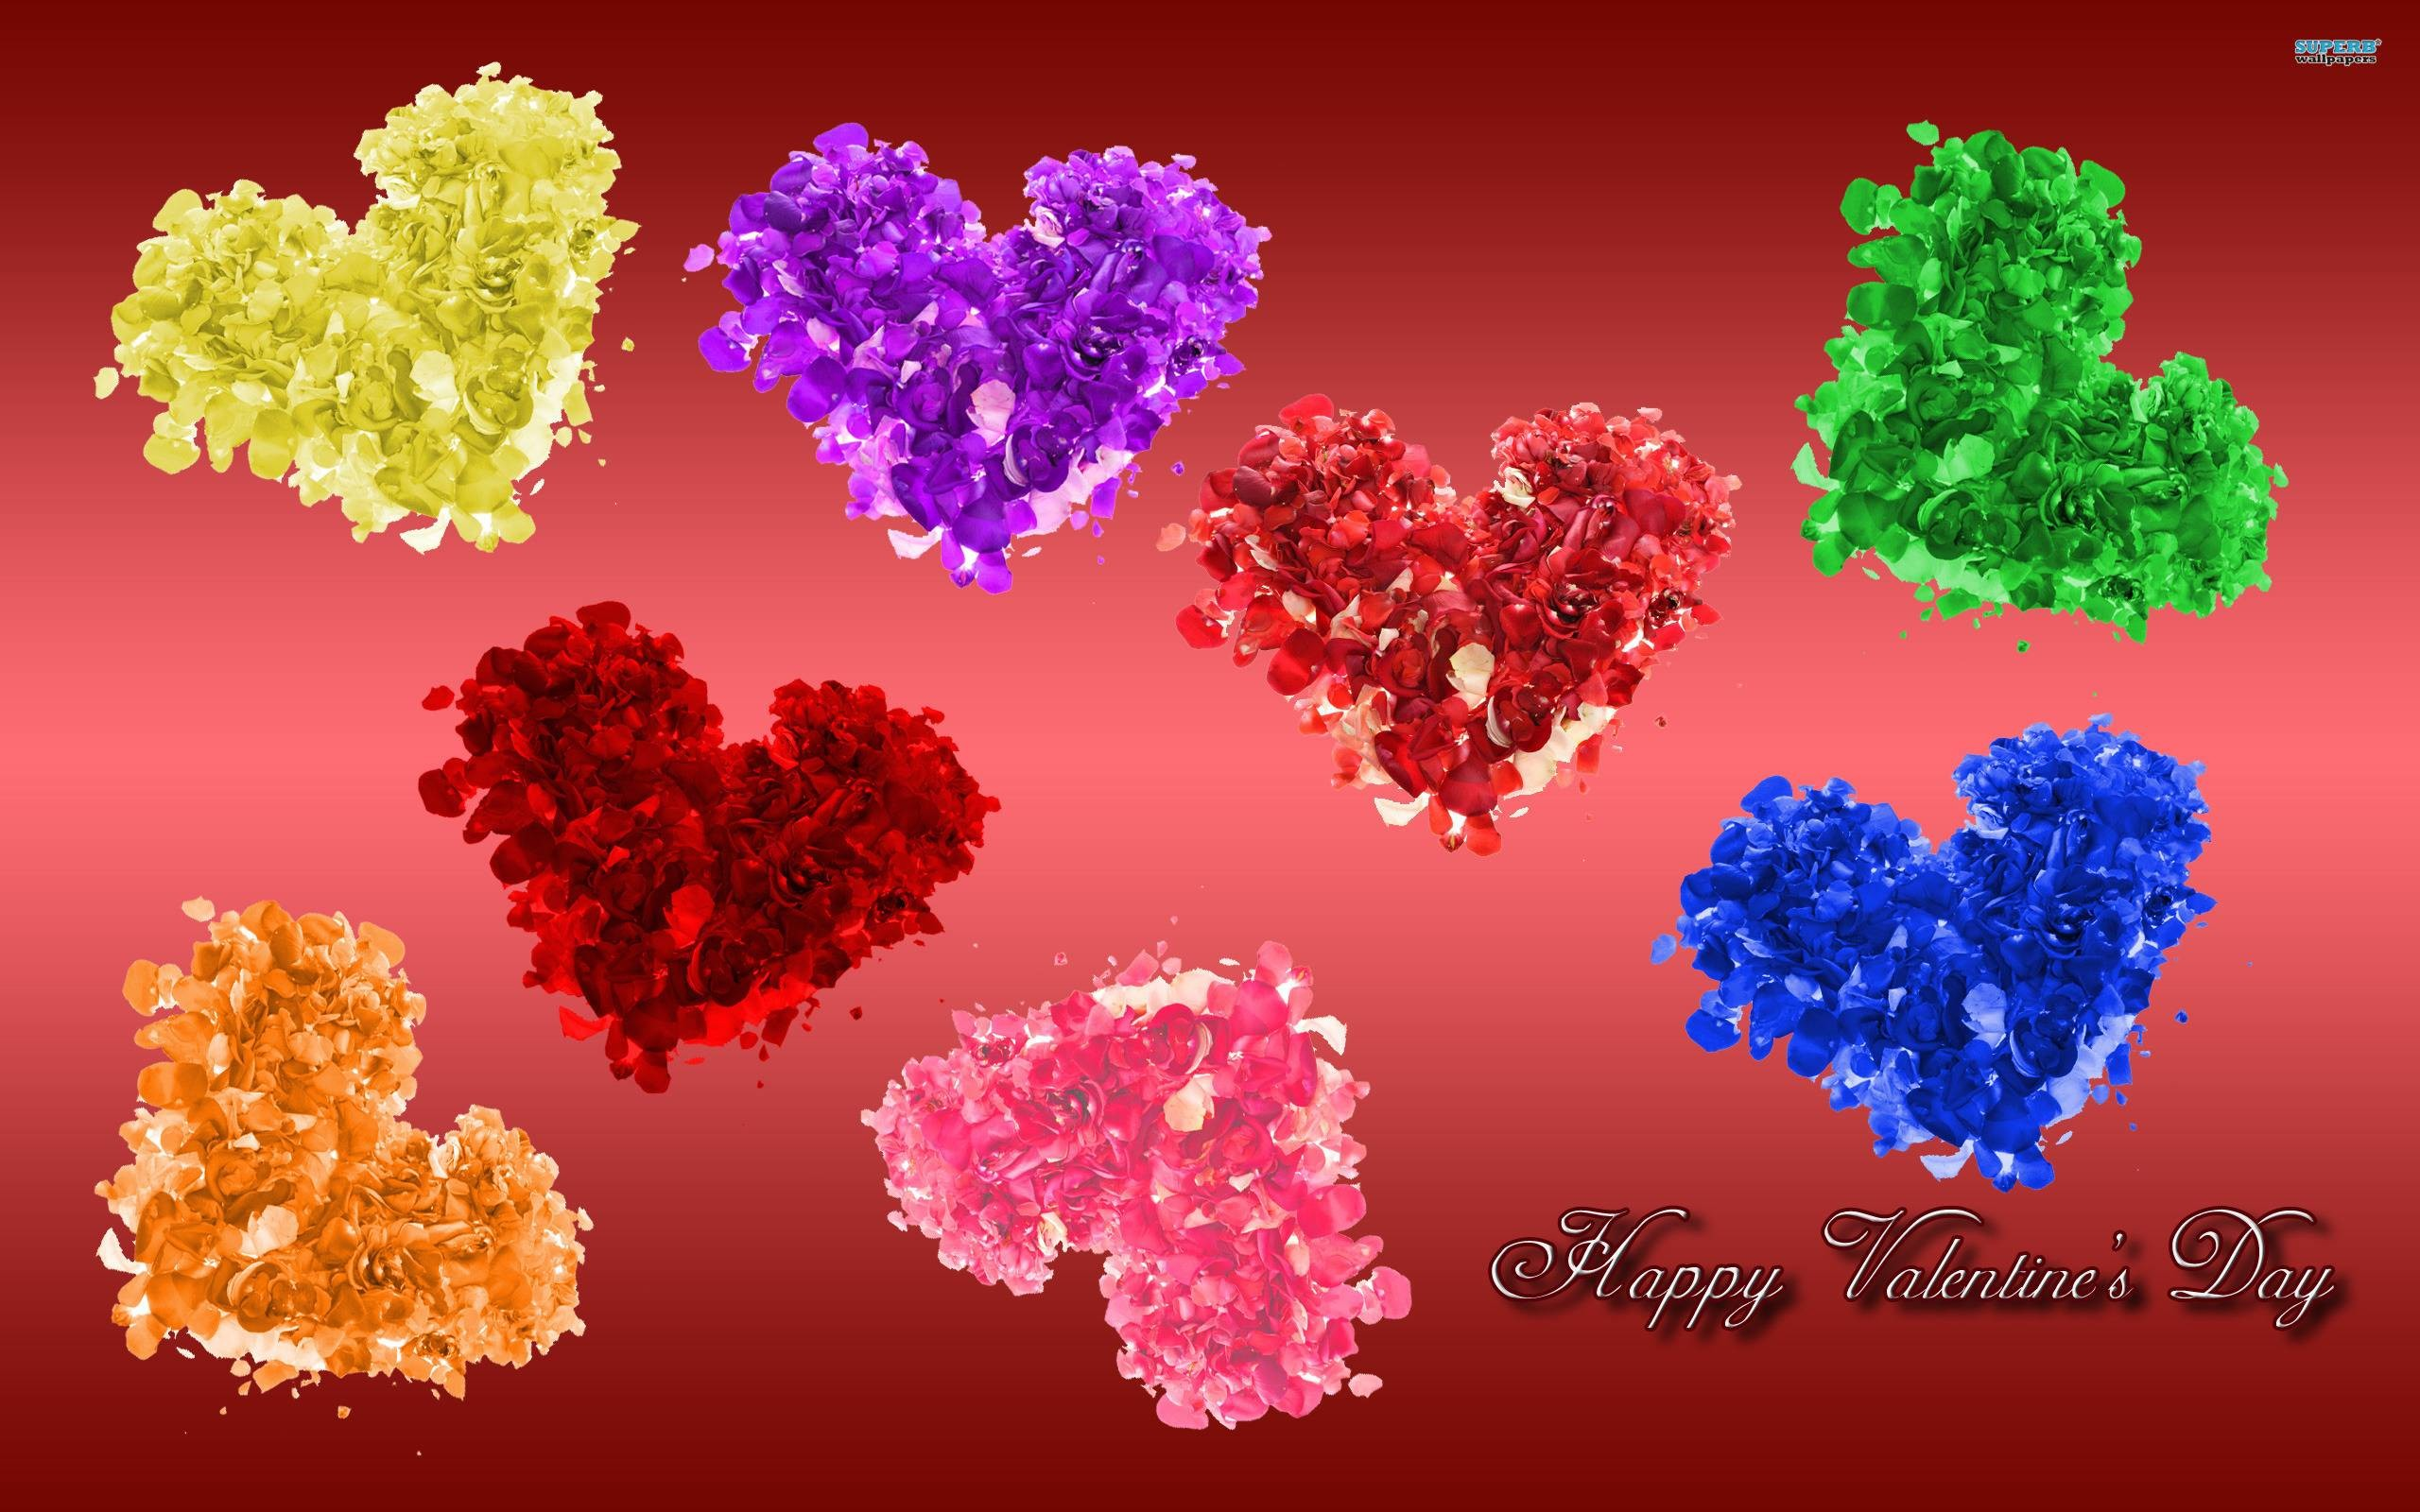 2560x1600 Wallpapers For Happy Valentines Day Wallpaper Desktop